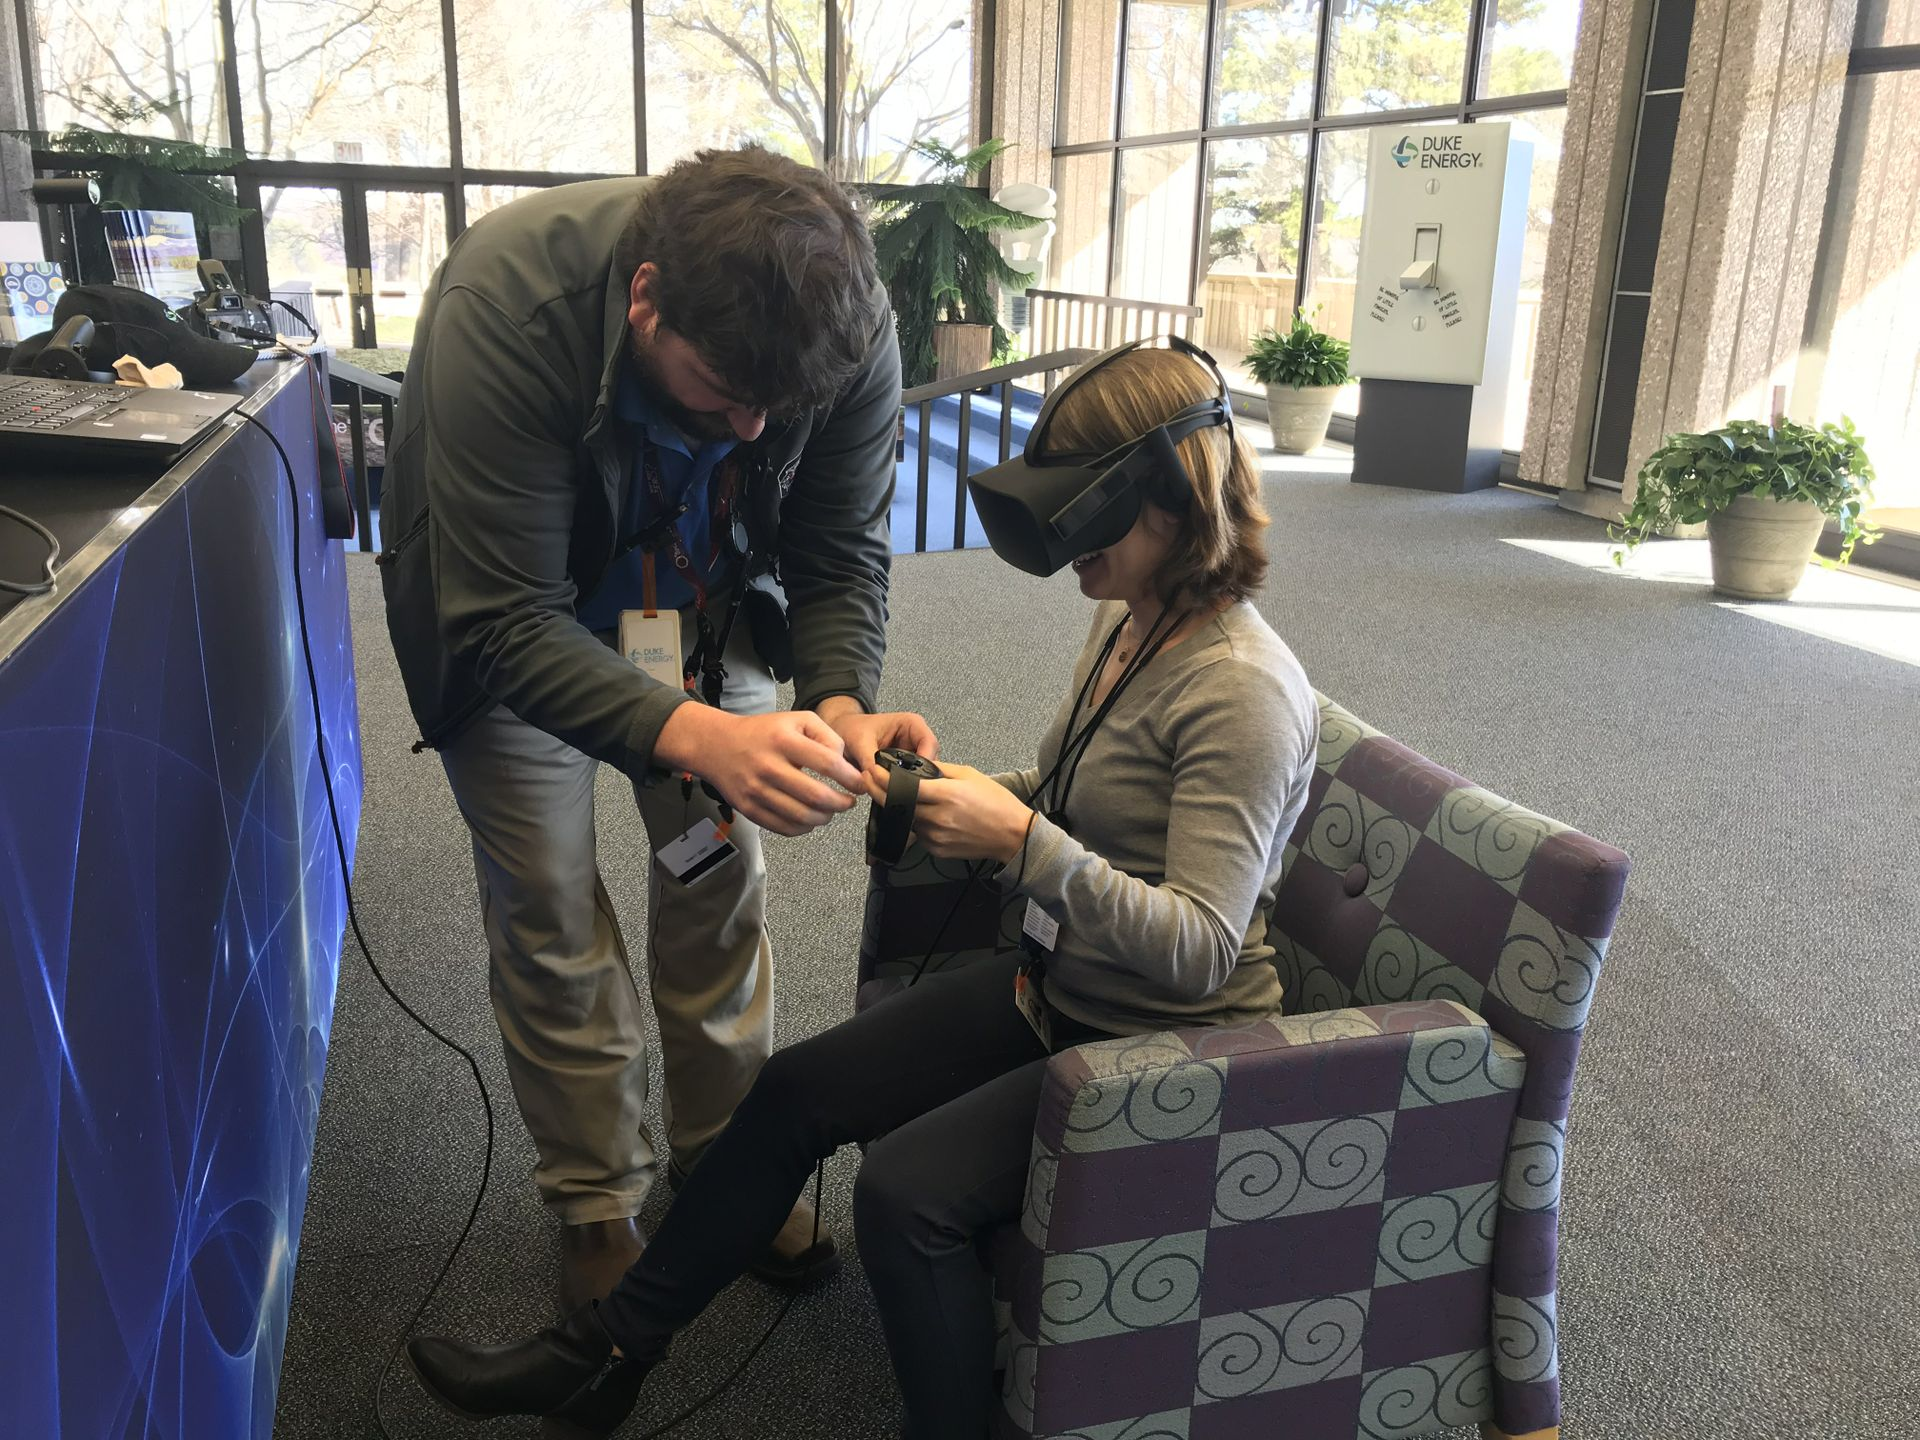 Mikayla Kreuzberger (right) using a virtual reality headset with guidance from Brad Medlin (left) at Oconee Nuclear Station's World of Energy